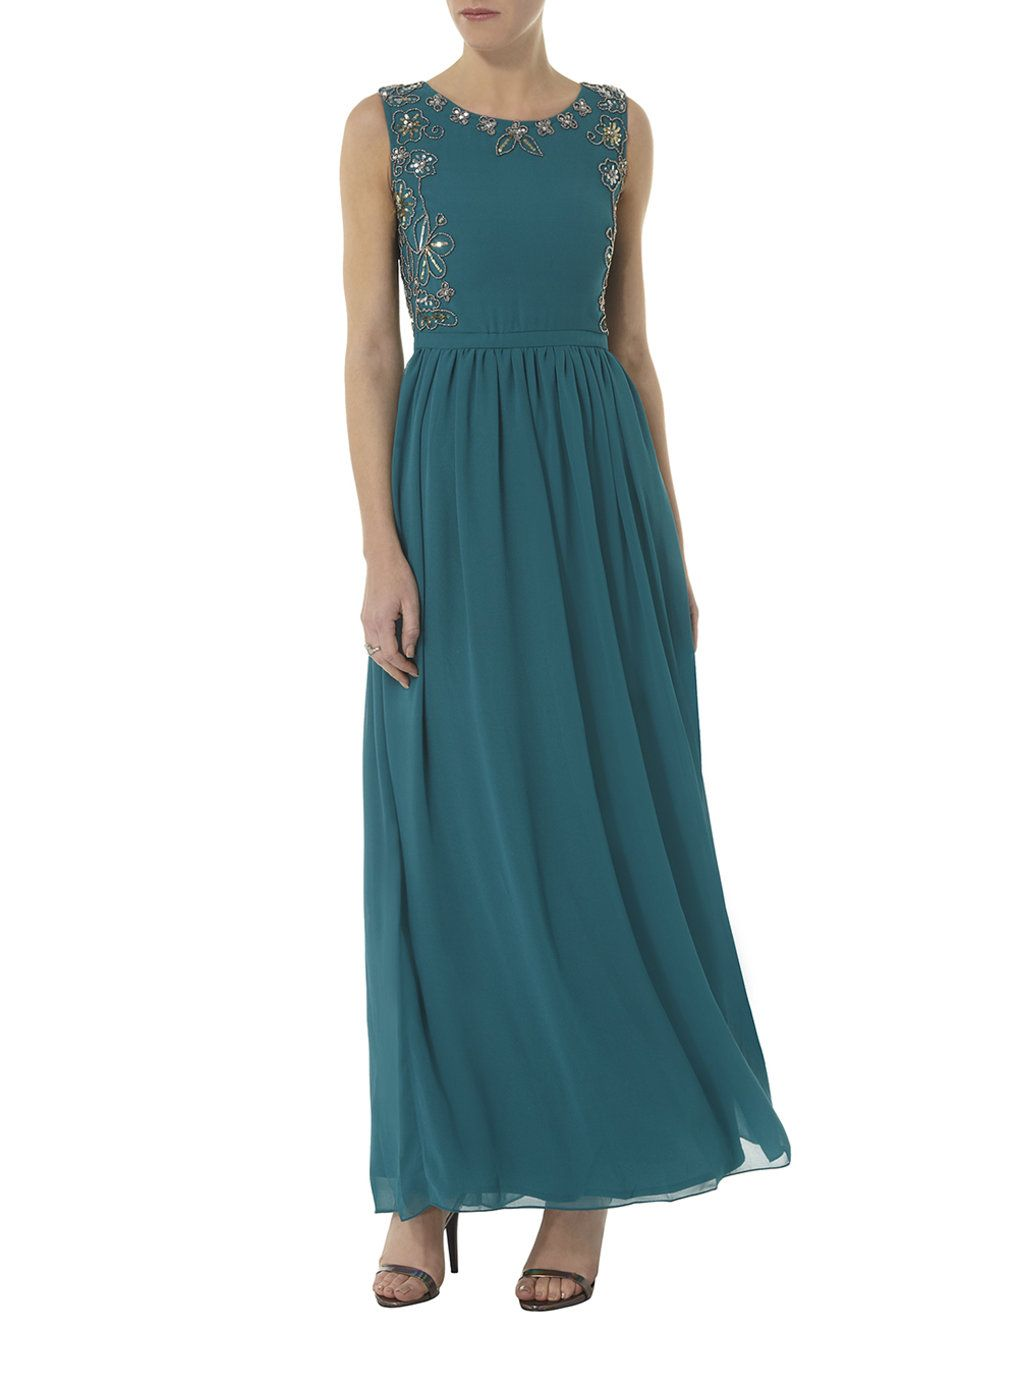 Photo 2 of Scarlett B emerald maxi dress | My summer wardrobe ...